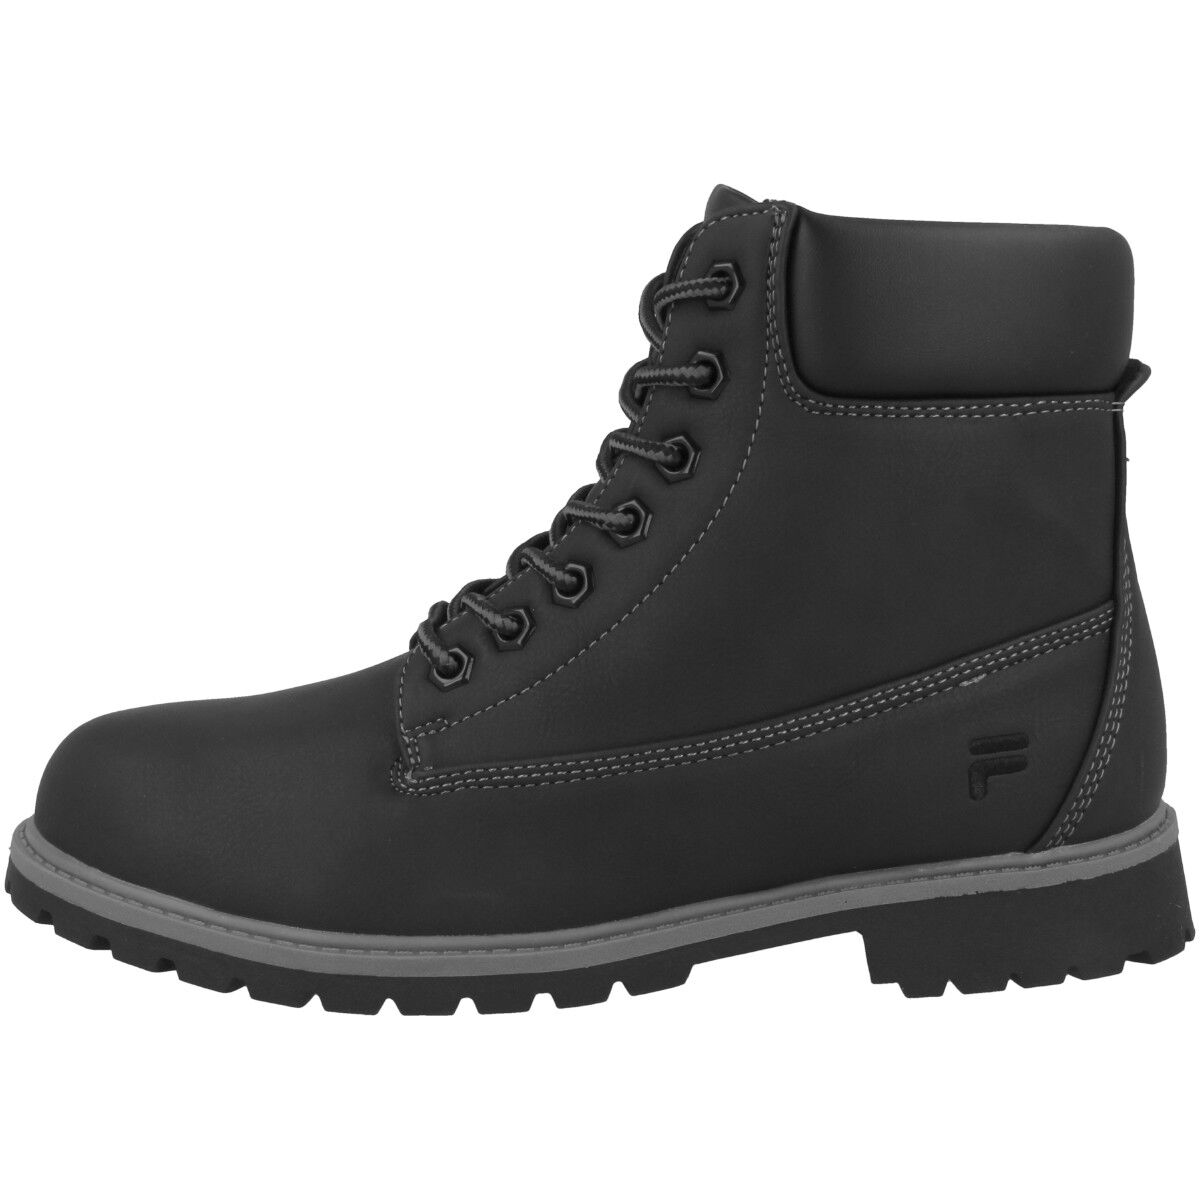 Fila Maverick mid botas zapatos señora outdoor High Top zapatos botas 1010196.12v